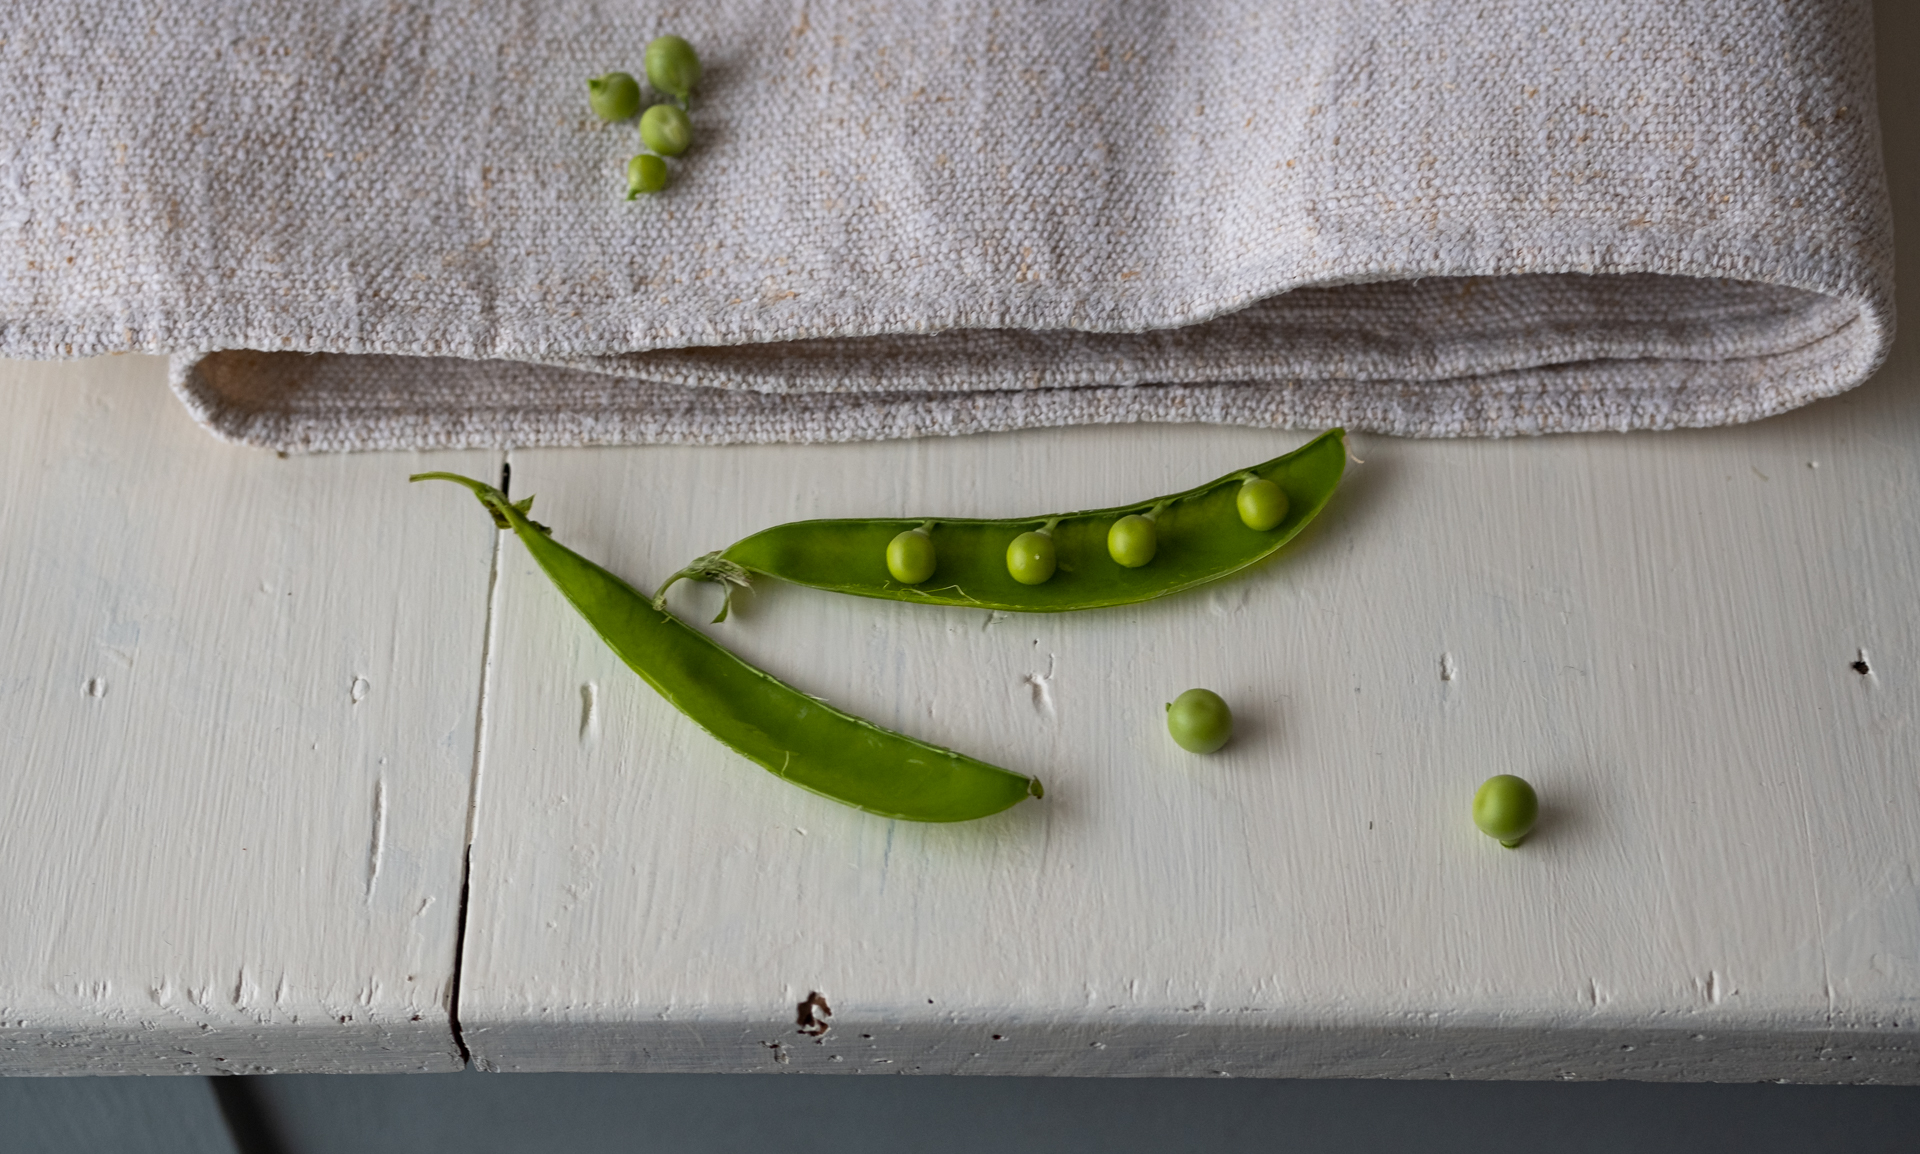 pea-pod-on-the-table